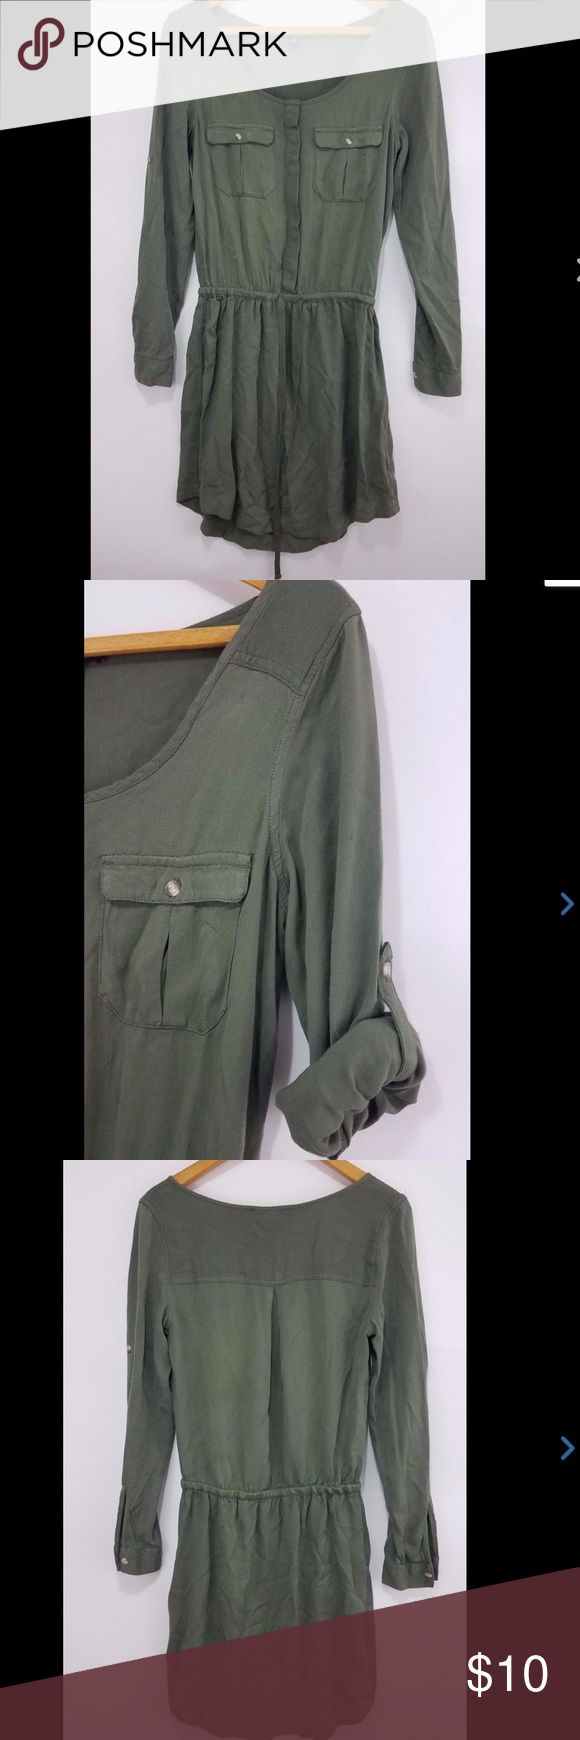 Dress Roll Up Sleeves Army Green Drawstring Sz XS American Eagle Dress Roll Up Sleeves Army Green Drawstring Sz XS  Measurements in pics American Eagle Outfitters Dresses Mini